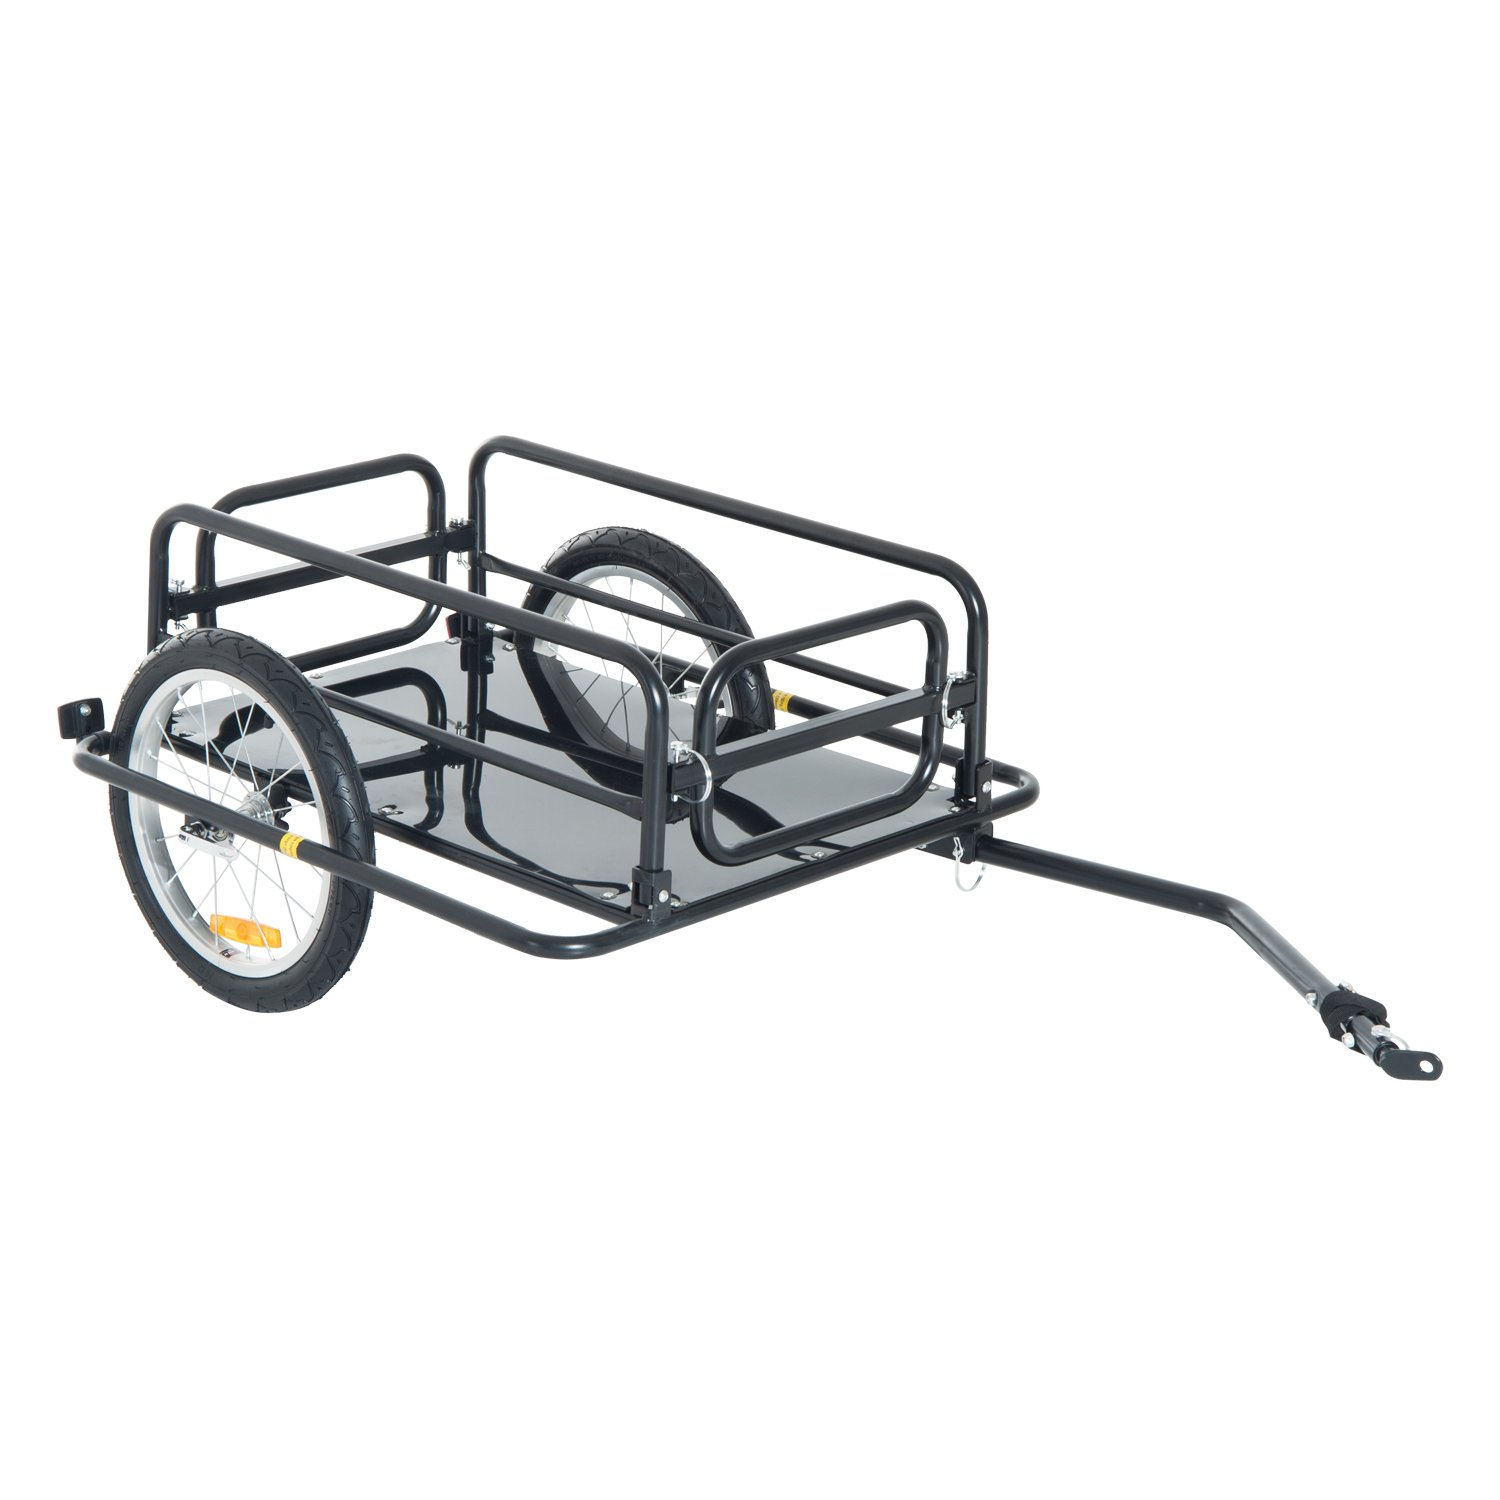 Aosom Wanderer Folding Bicycle Bike Cargo Storage Cart and Luggage Trailer with Hitch - Black